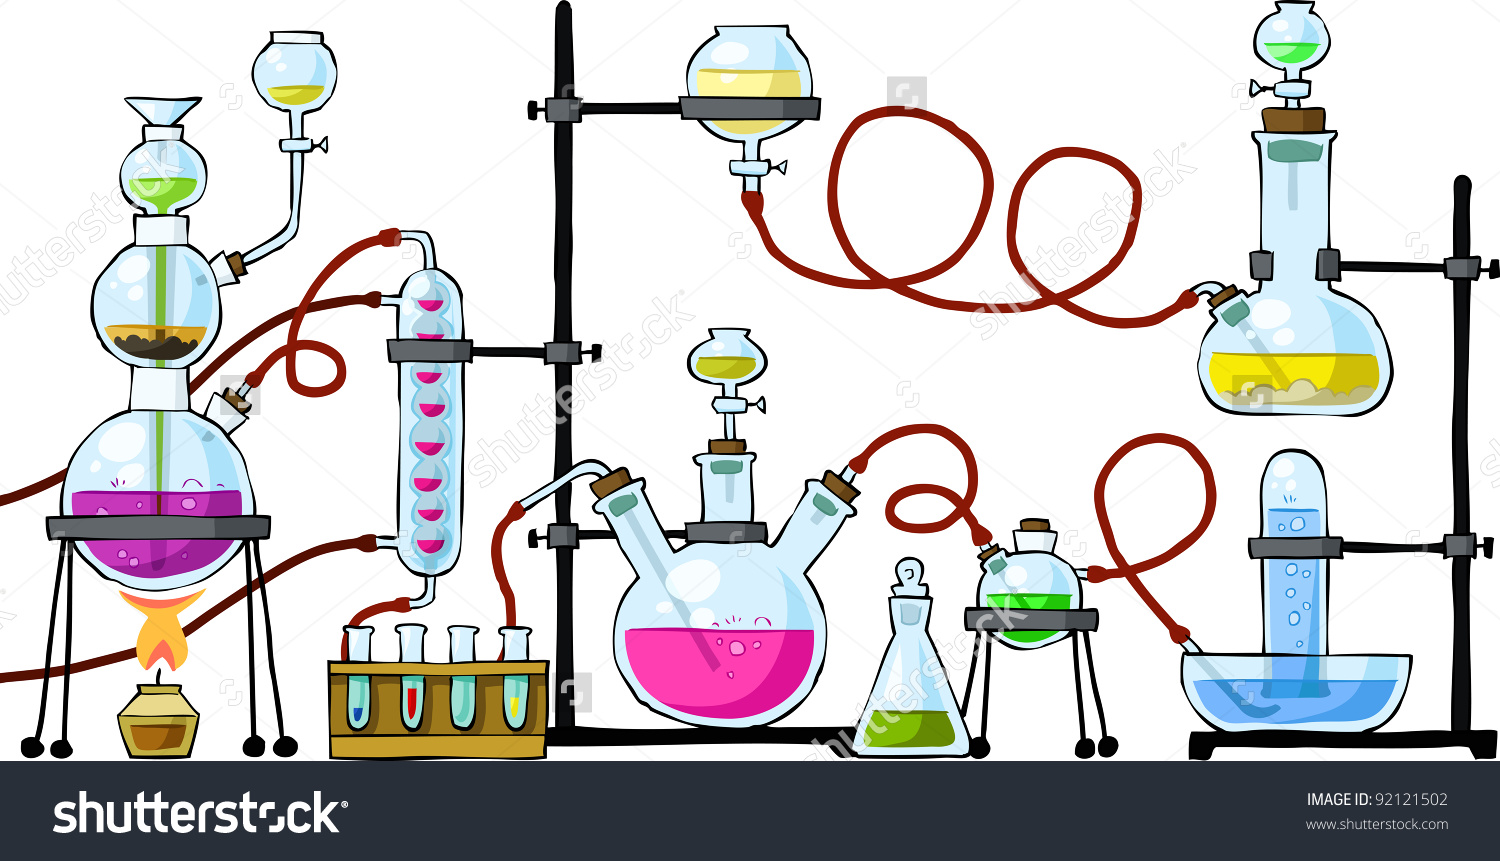 Lab images clipart image library library 23+ Science Lab Clipart | ClipartLook image library library